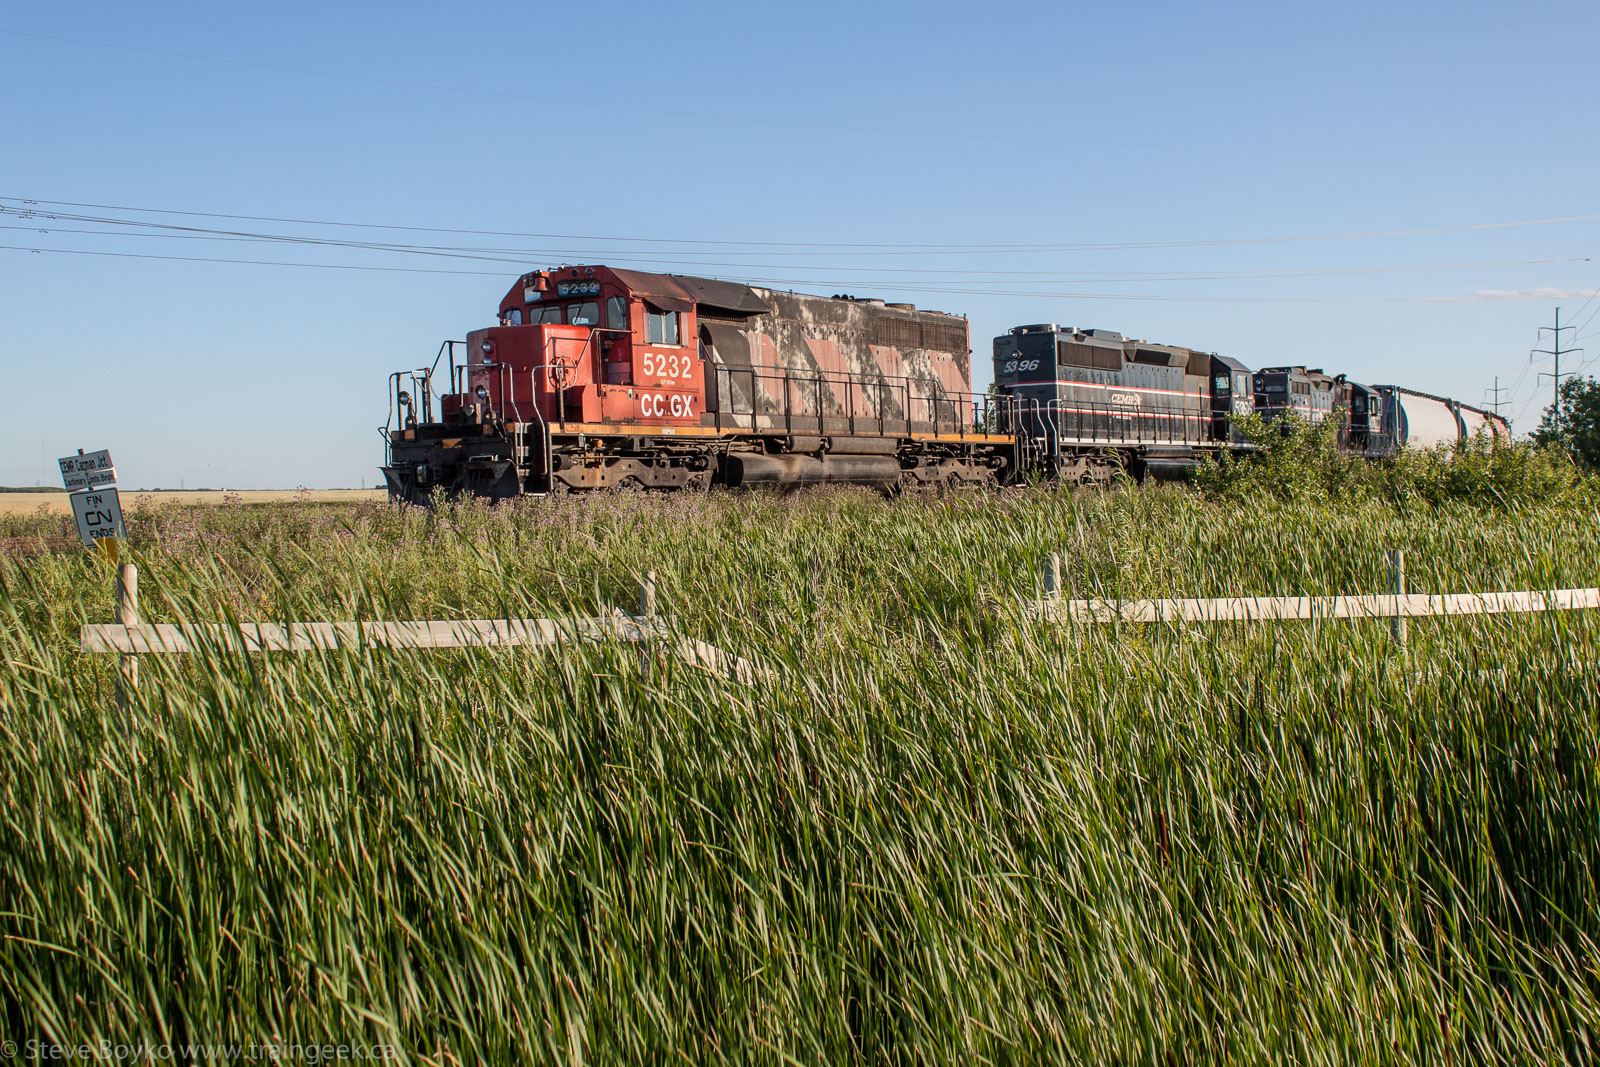 CCGX 5232, CEMR 5396 and CEMR 4002 in Winnipeg 2014/07/25